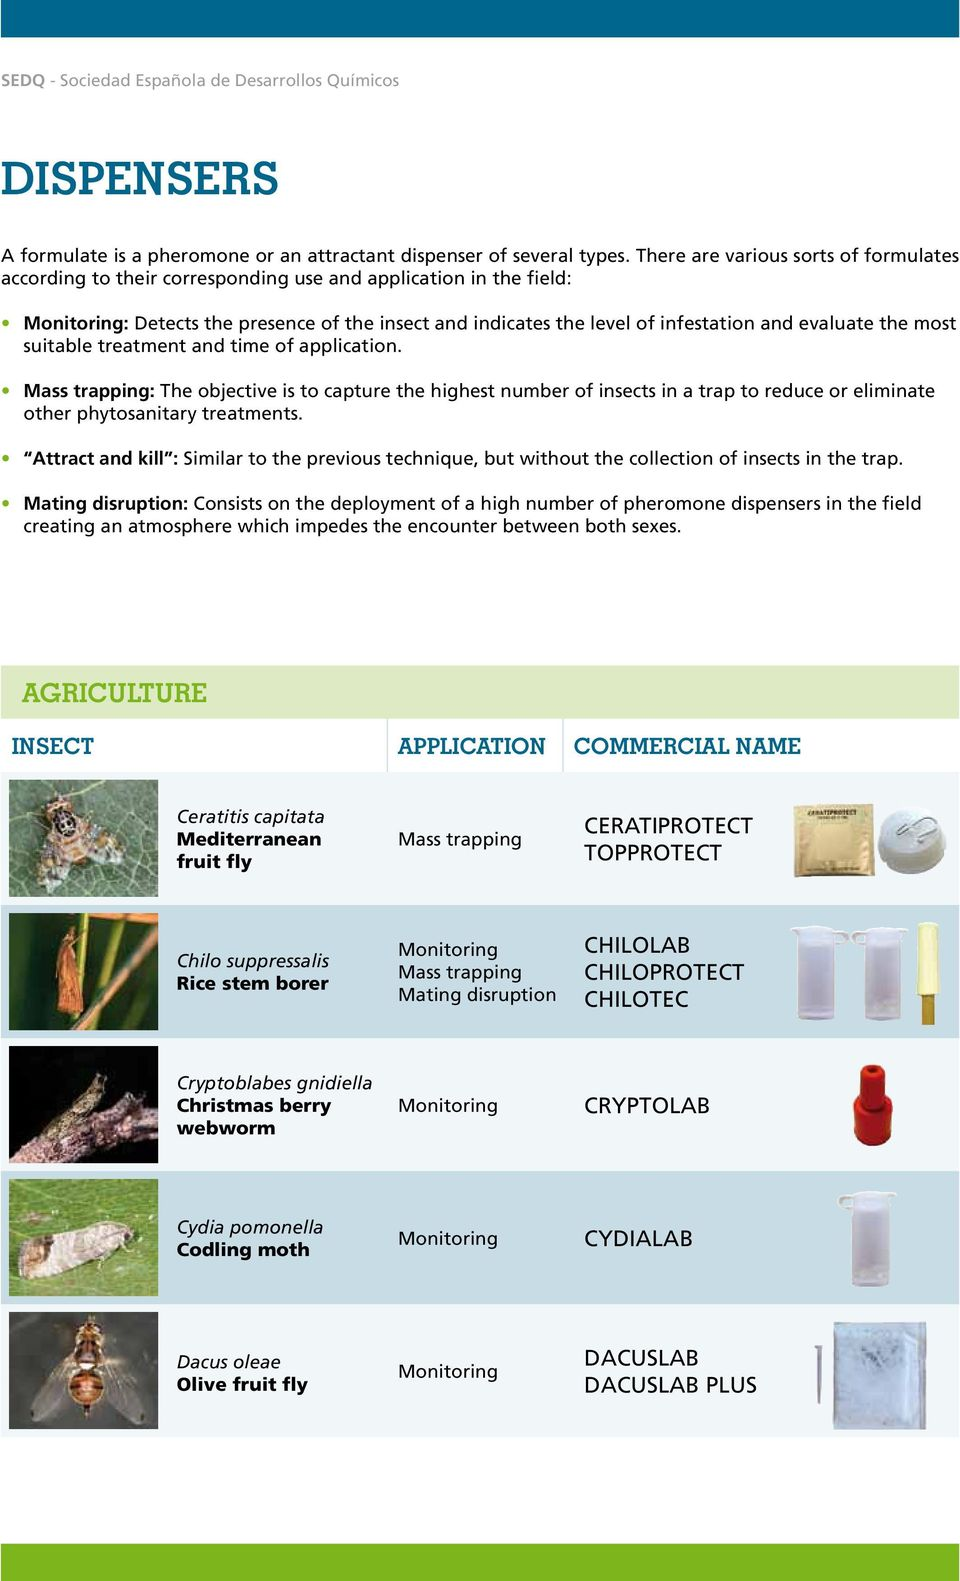 most suitable treatment and time of application. Mass trapping: The objective is to capture the highest number of insects in a trap to reduce or eliminate other phytosanitary treatments.